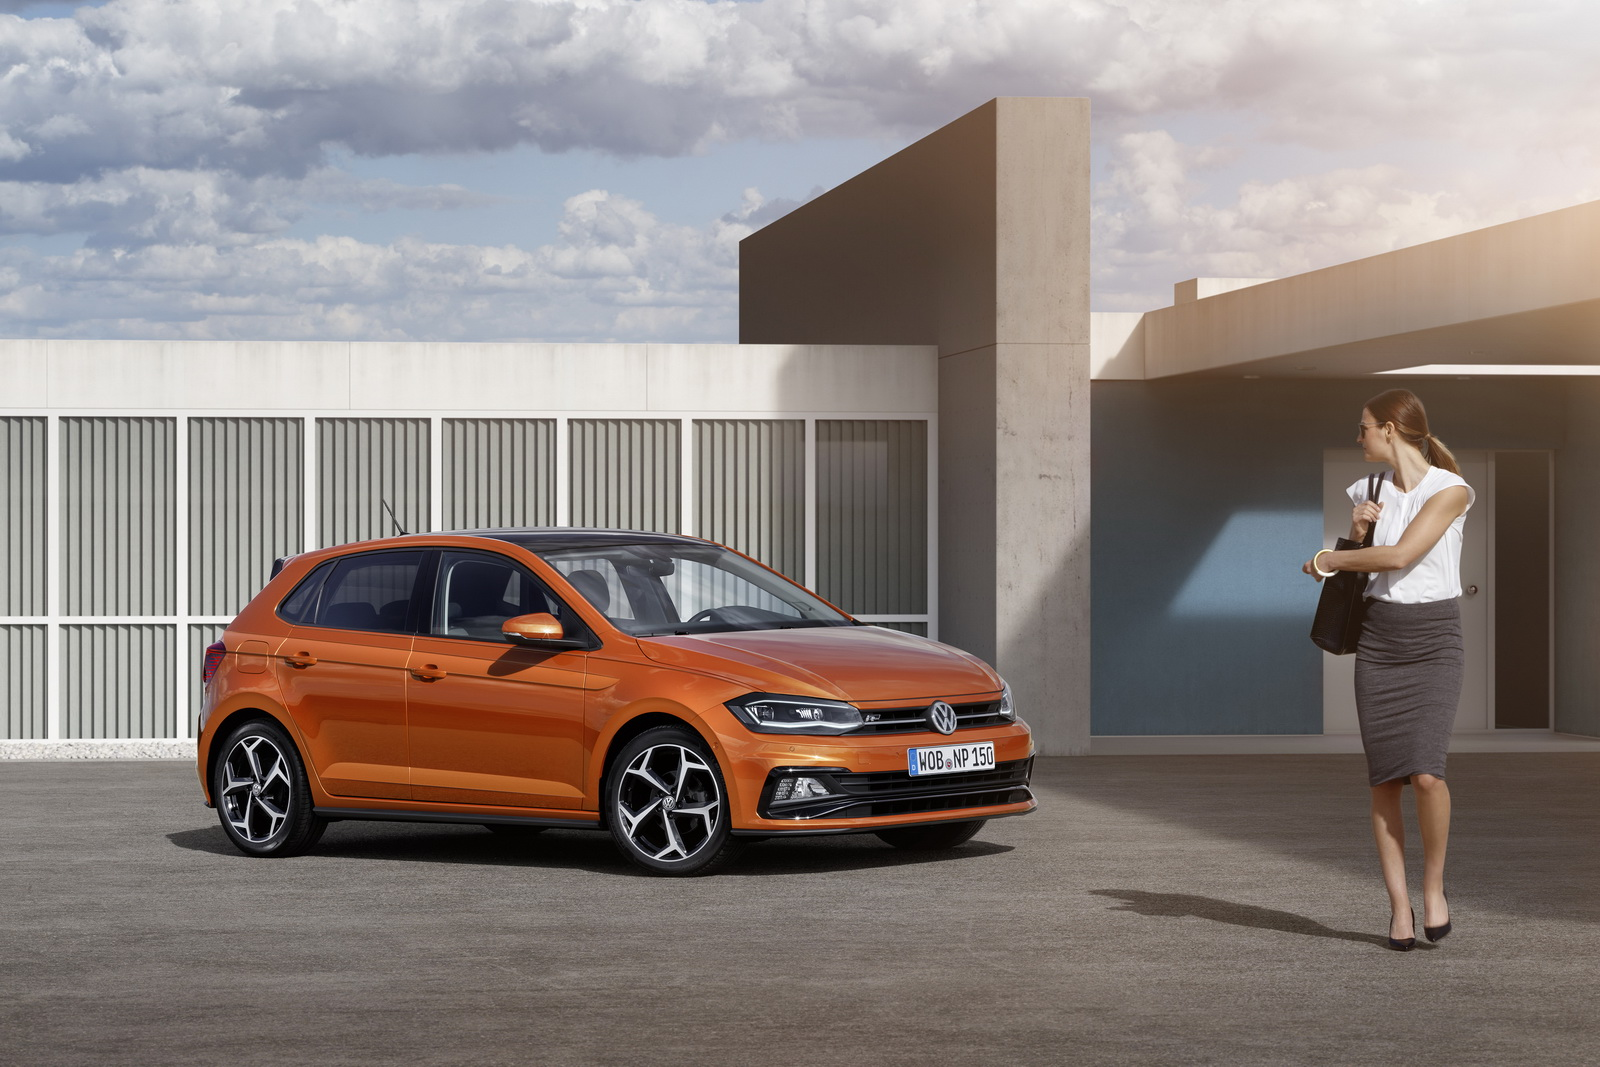 Volkswagen Polo and Polo GTI 2018 (1)